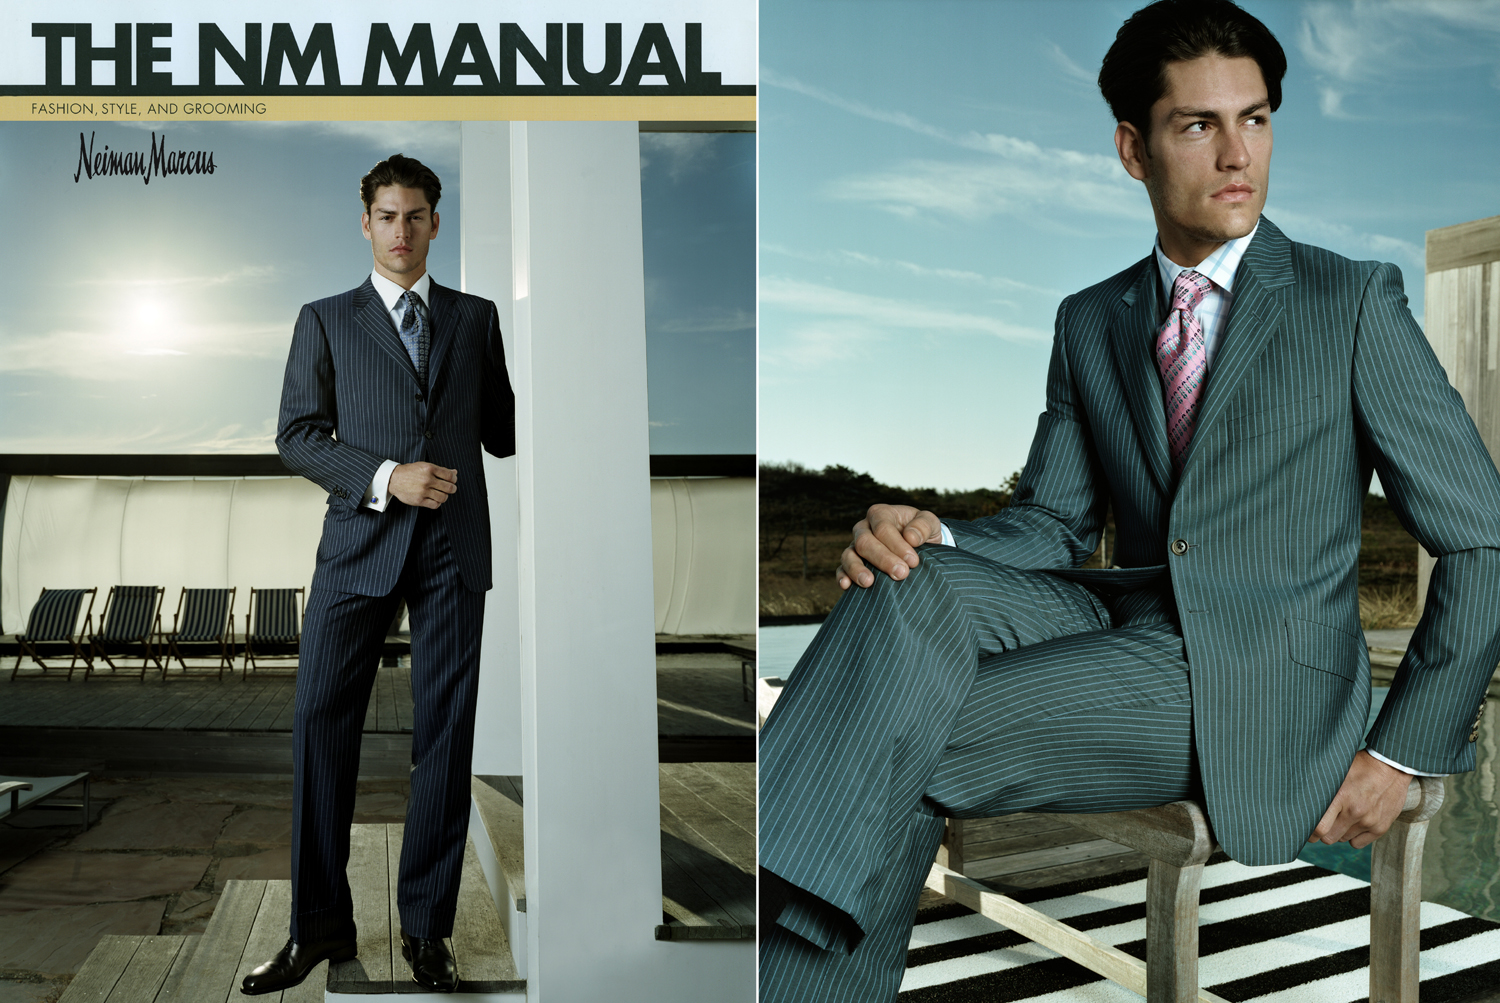 Neiman Marcus - The Manual